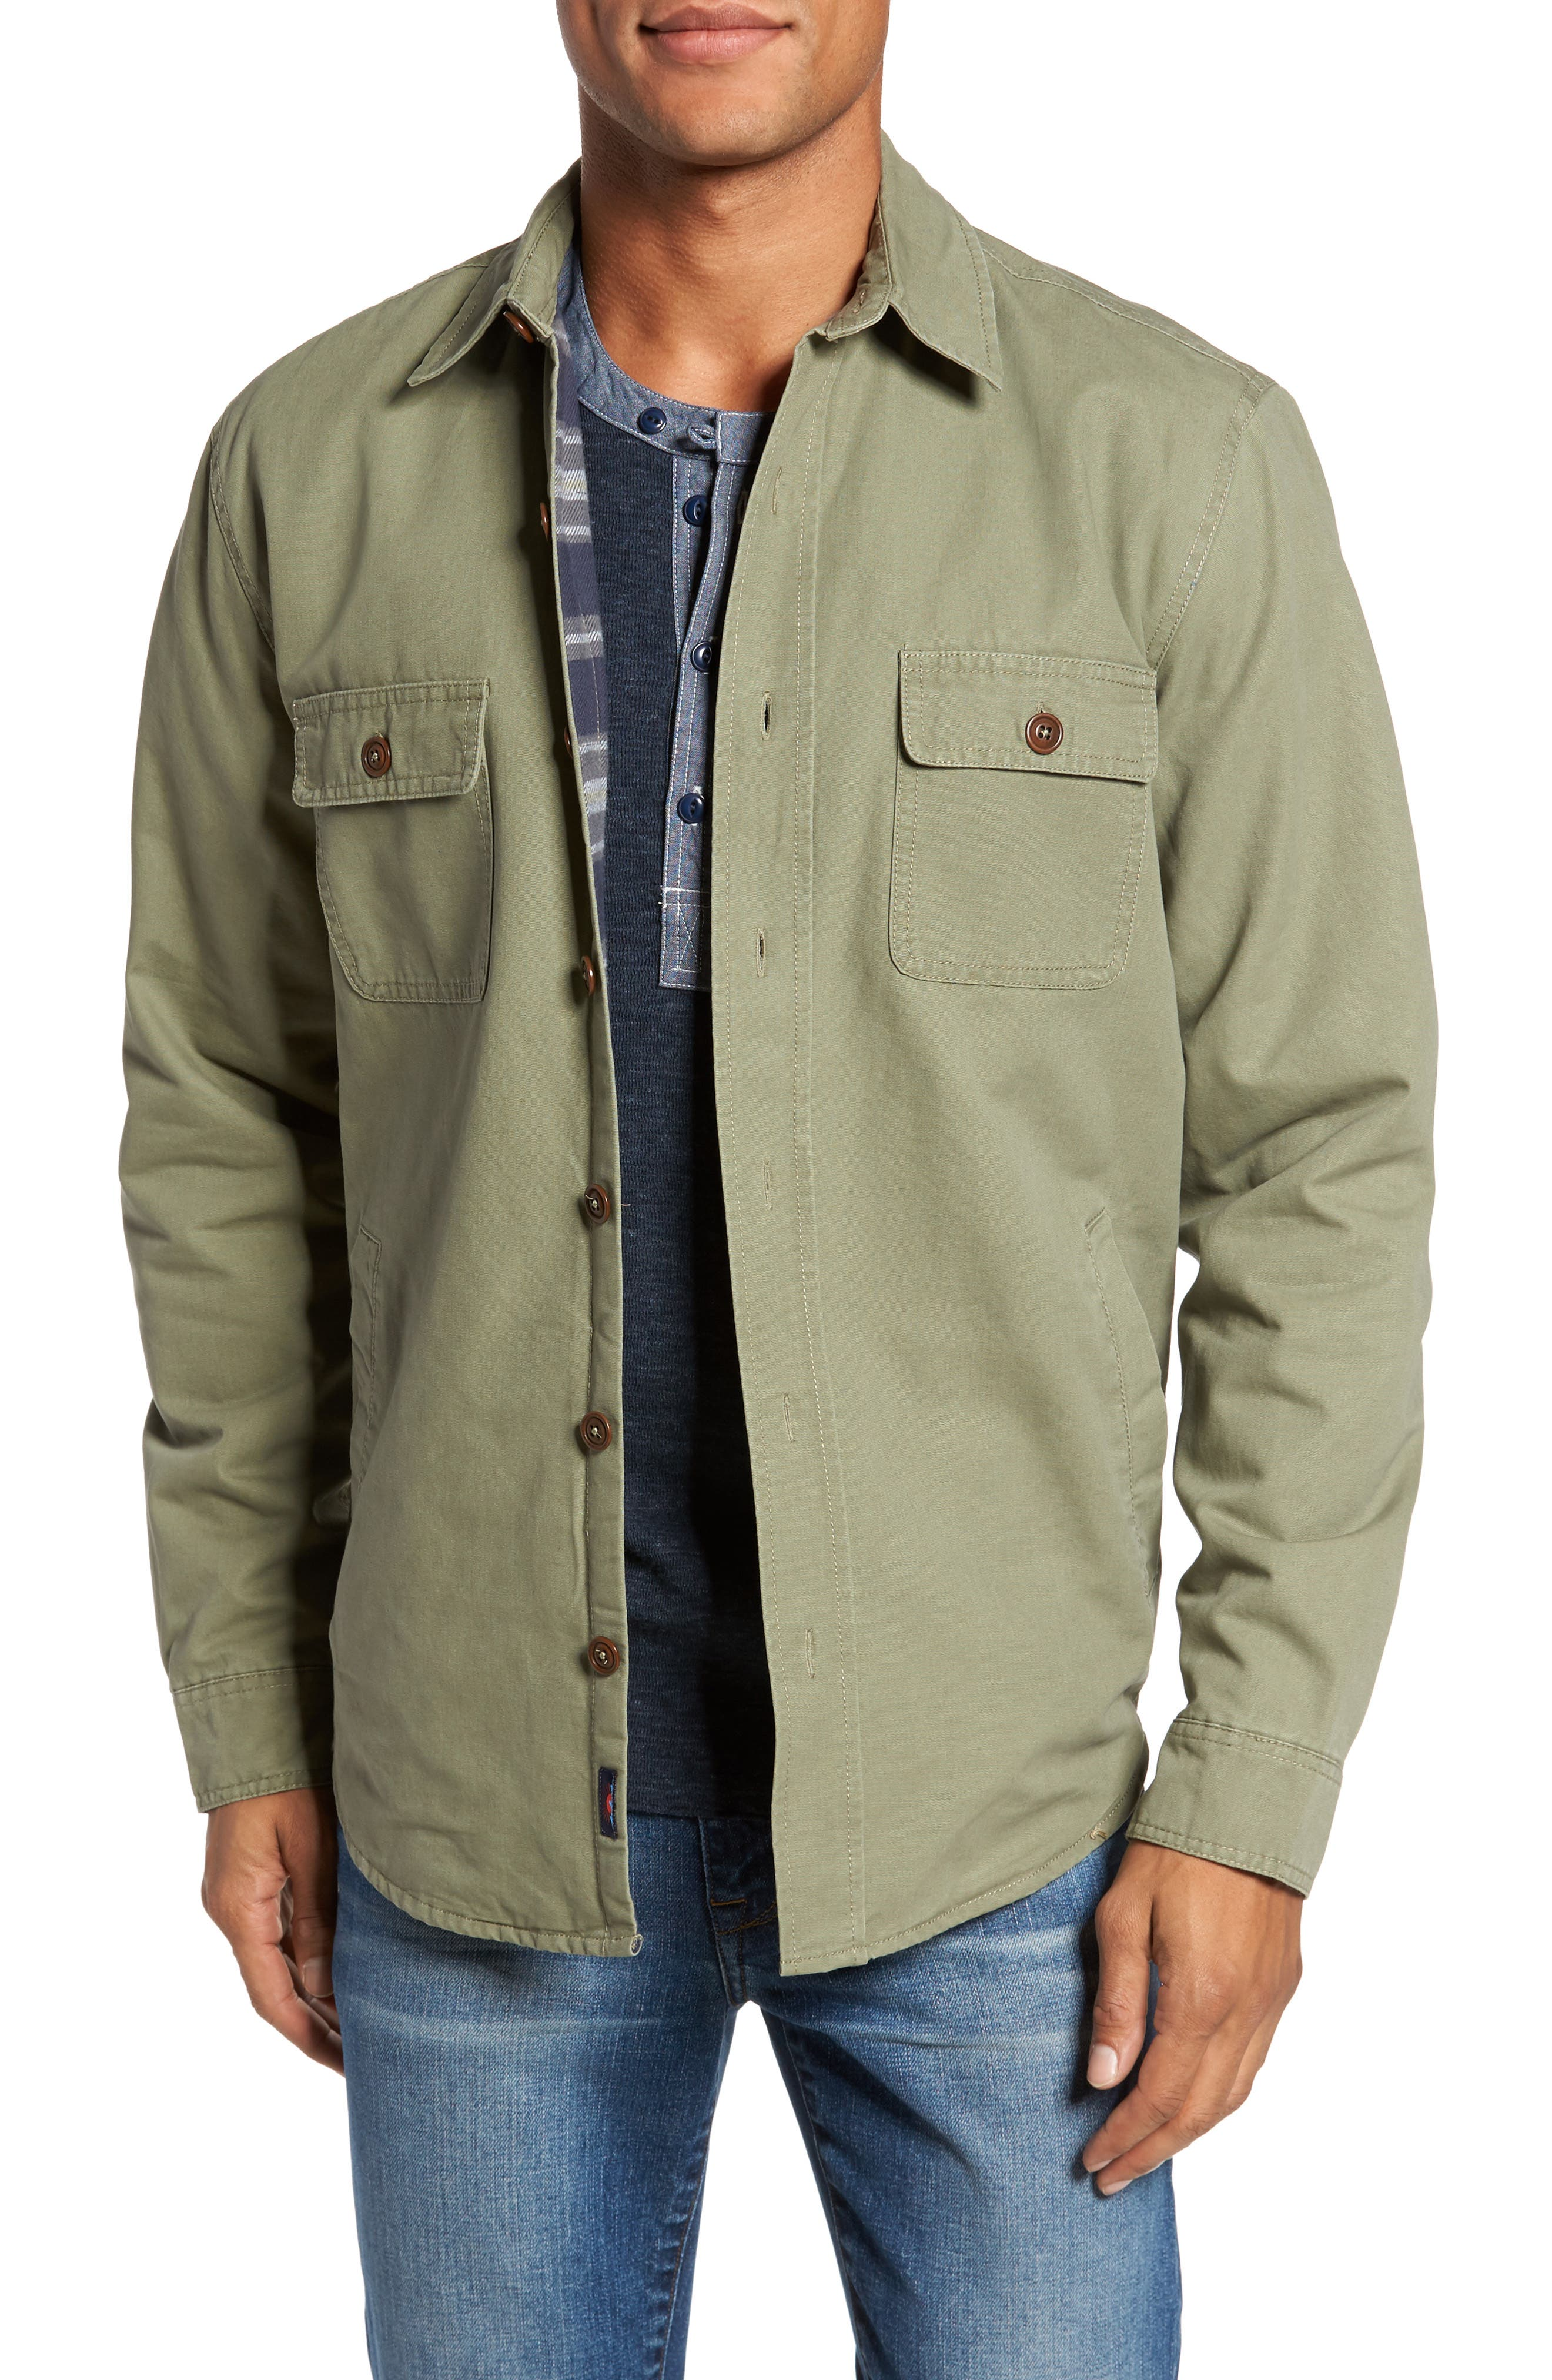 Alternate Image 1 Selected - Faherty Blanket Lined Shirt Jacket